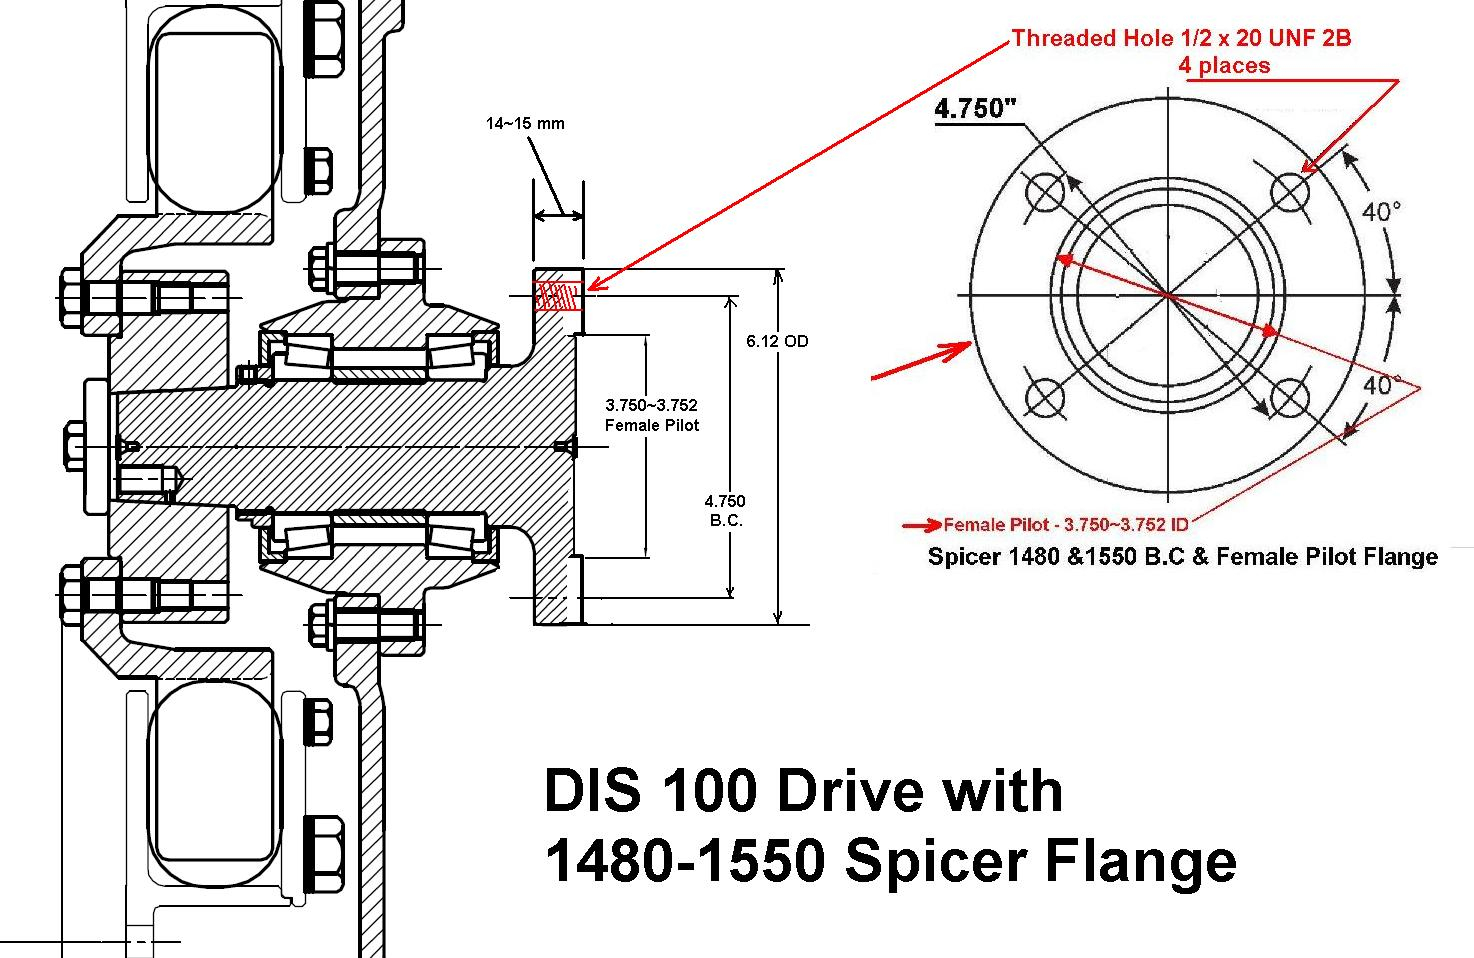 8.3 cummins fuel shutoff solenoid wiring diagram Collection-DIS 100 Bellhousing Mount PTO Couplings 9-h